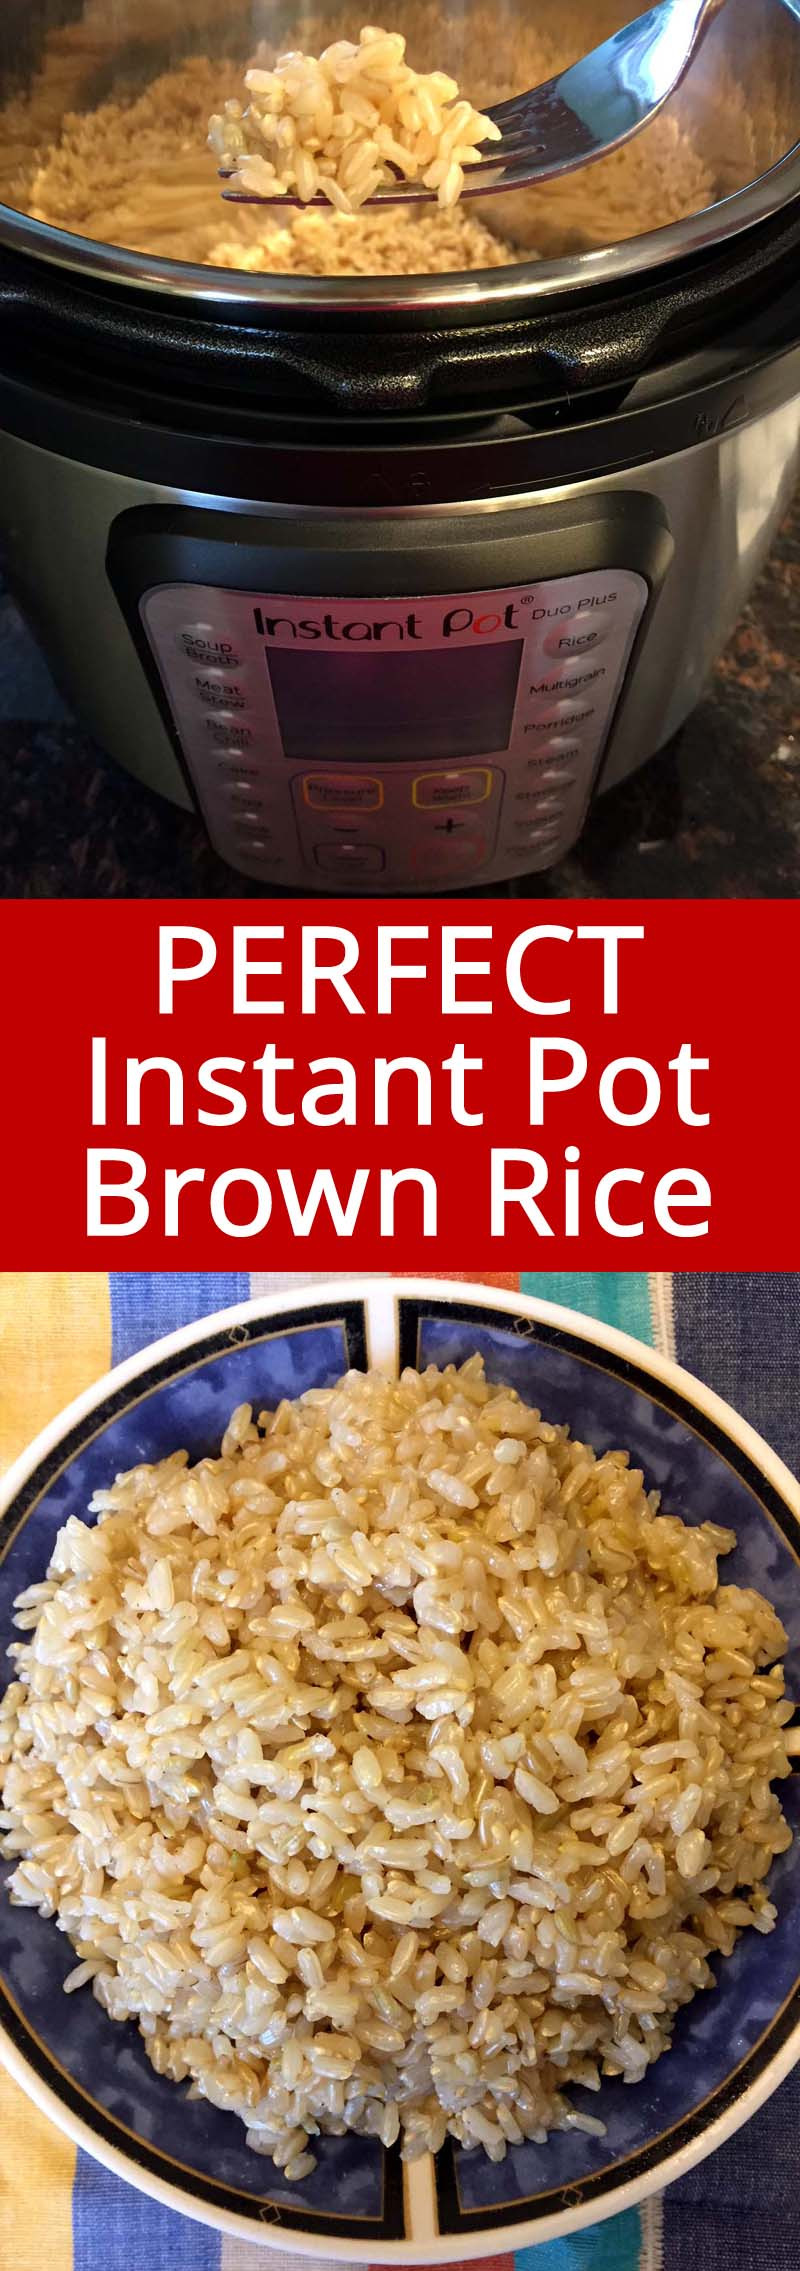 Brown Rice In The Instant Pot  Instant Pot Brown Rice – How To Cook Brown Rice In A